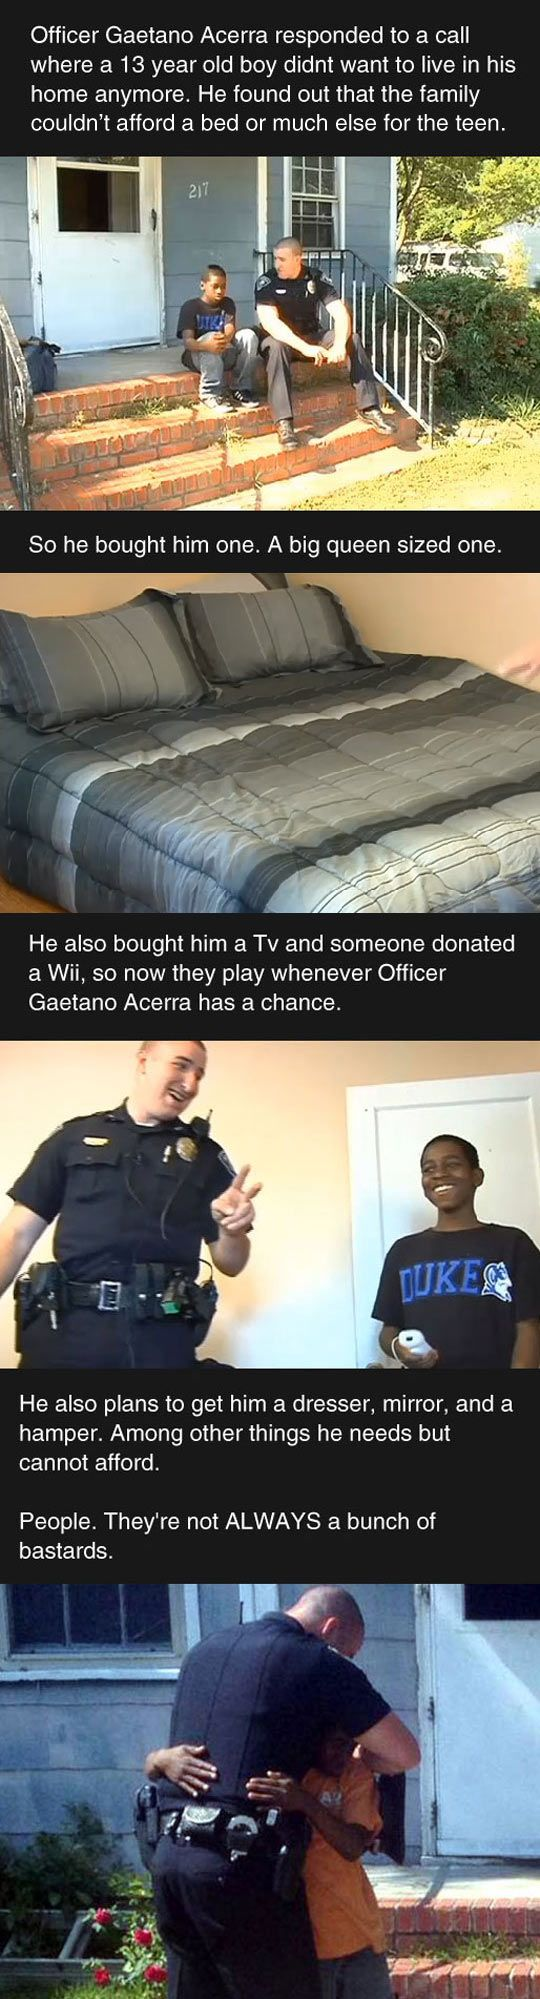 17 best ideas about police officer police law how about some love for a good police officer